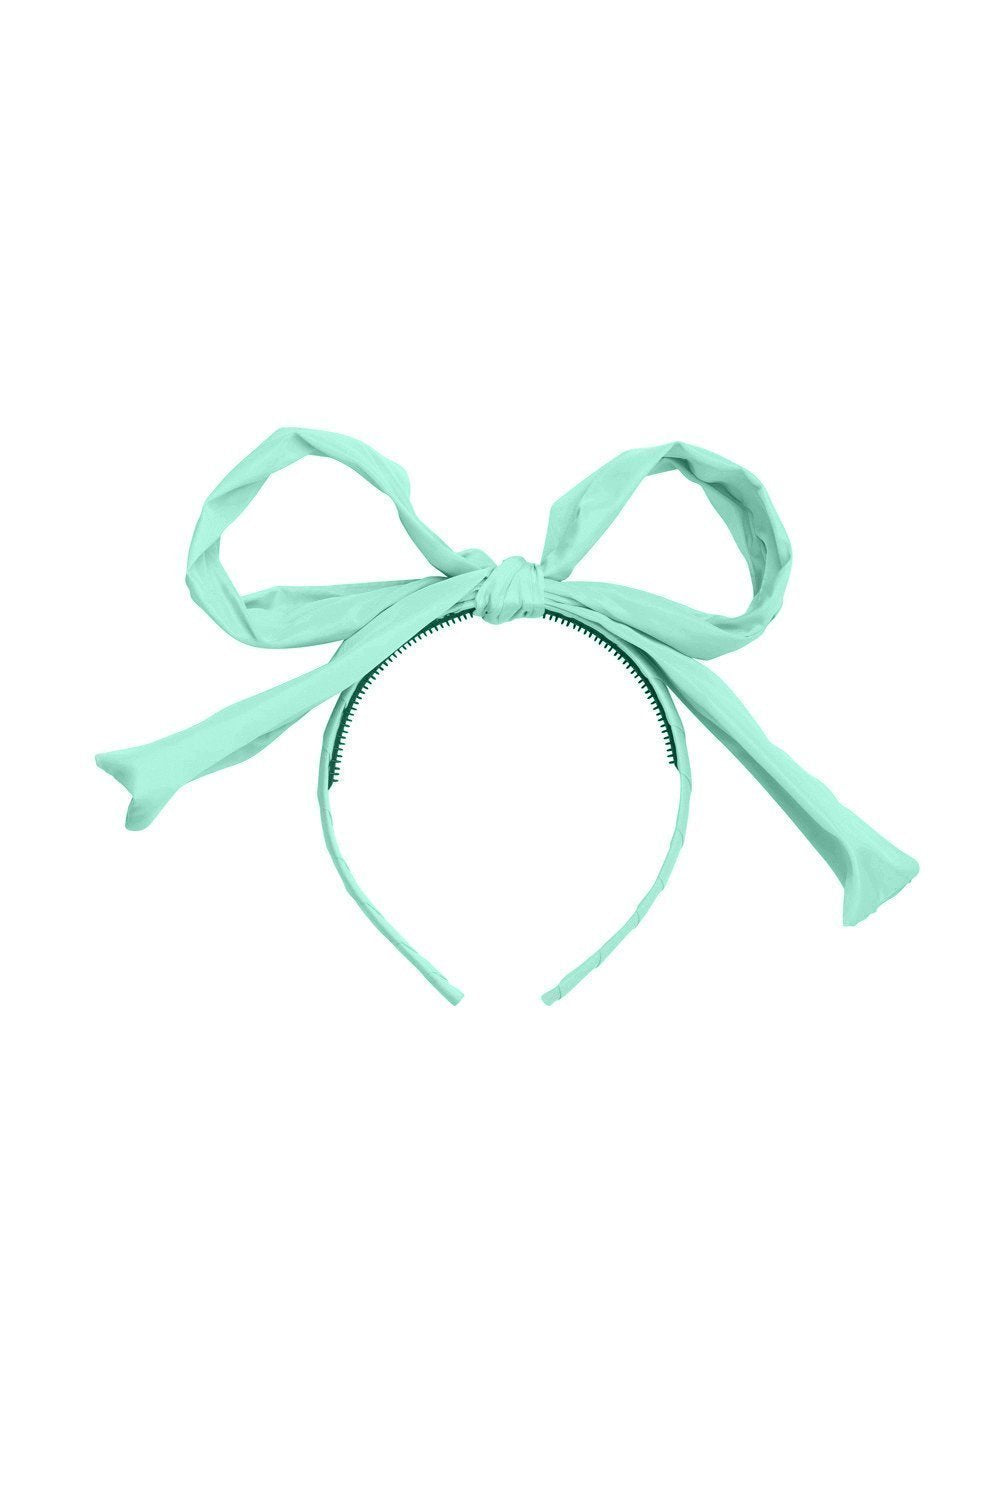 Party Bow Taffeta - Mint - PROJECT 6, modest fashion